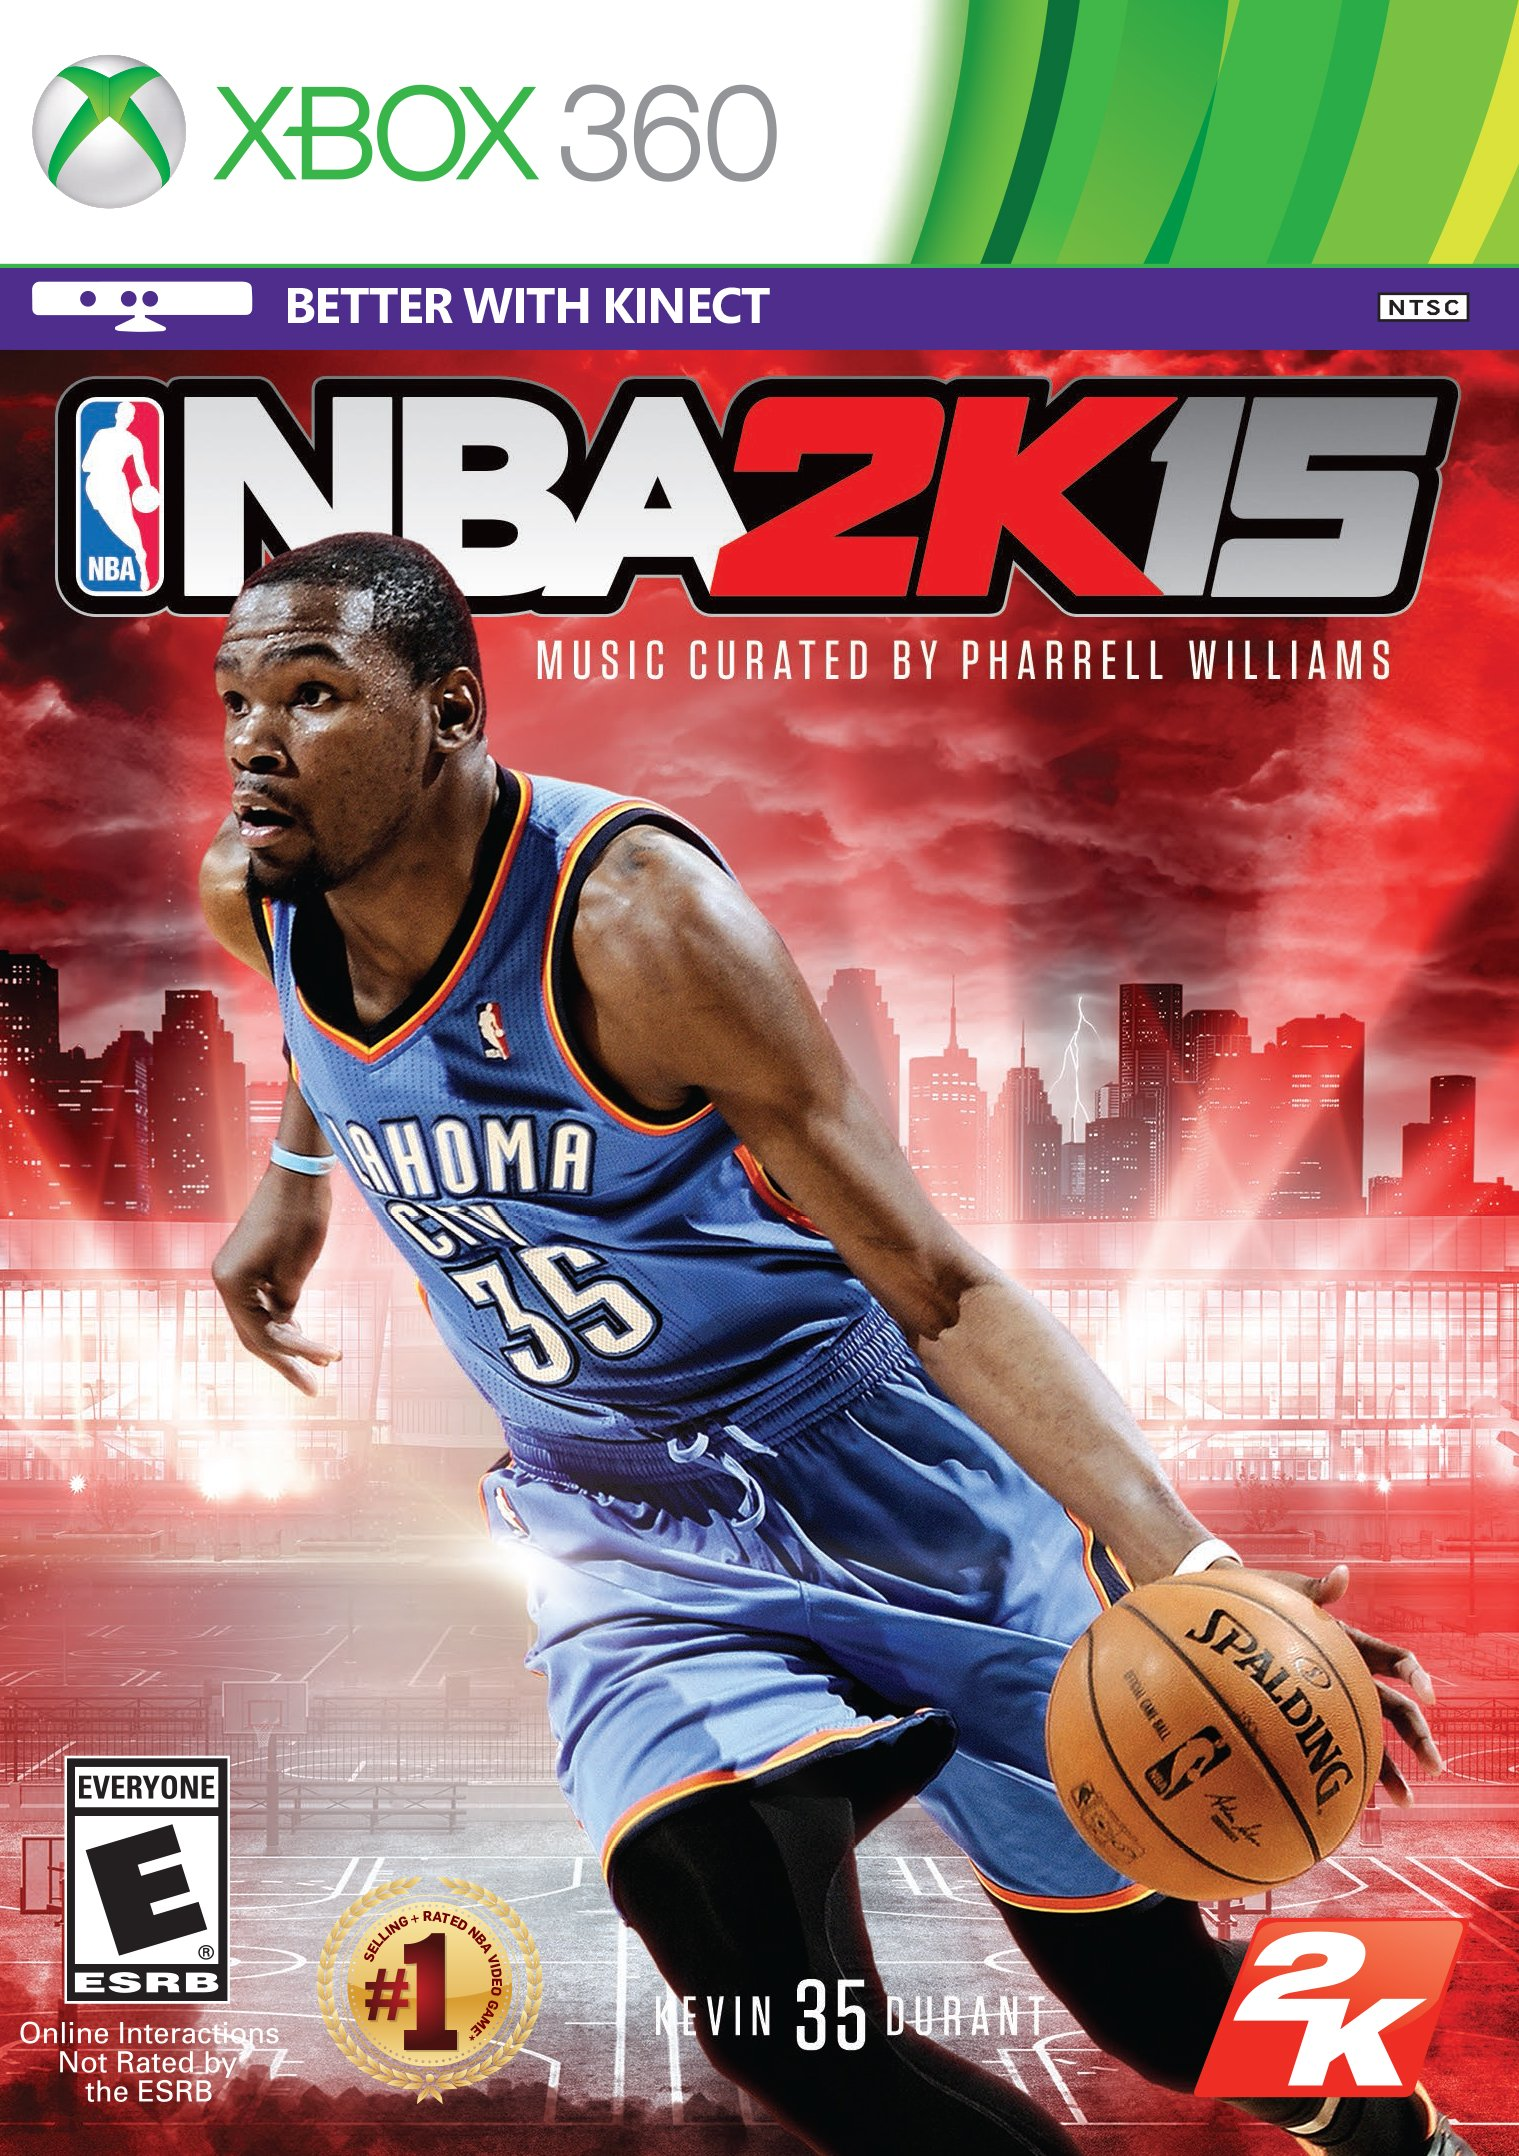 NBA 2K15 Release Date (Xbox 360, PS3, PC, Xbox One, PS4)Xbox 360 Games Covers